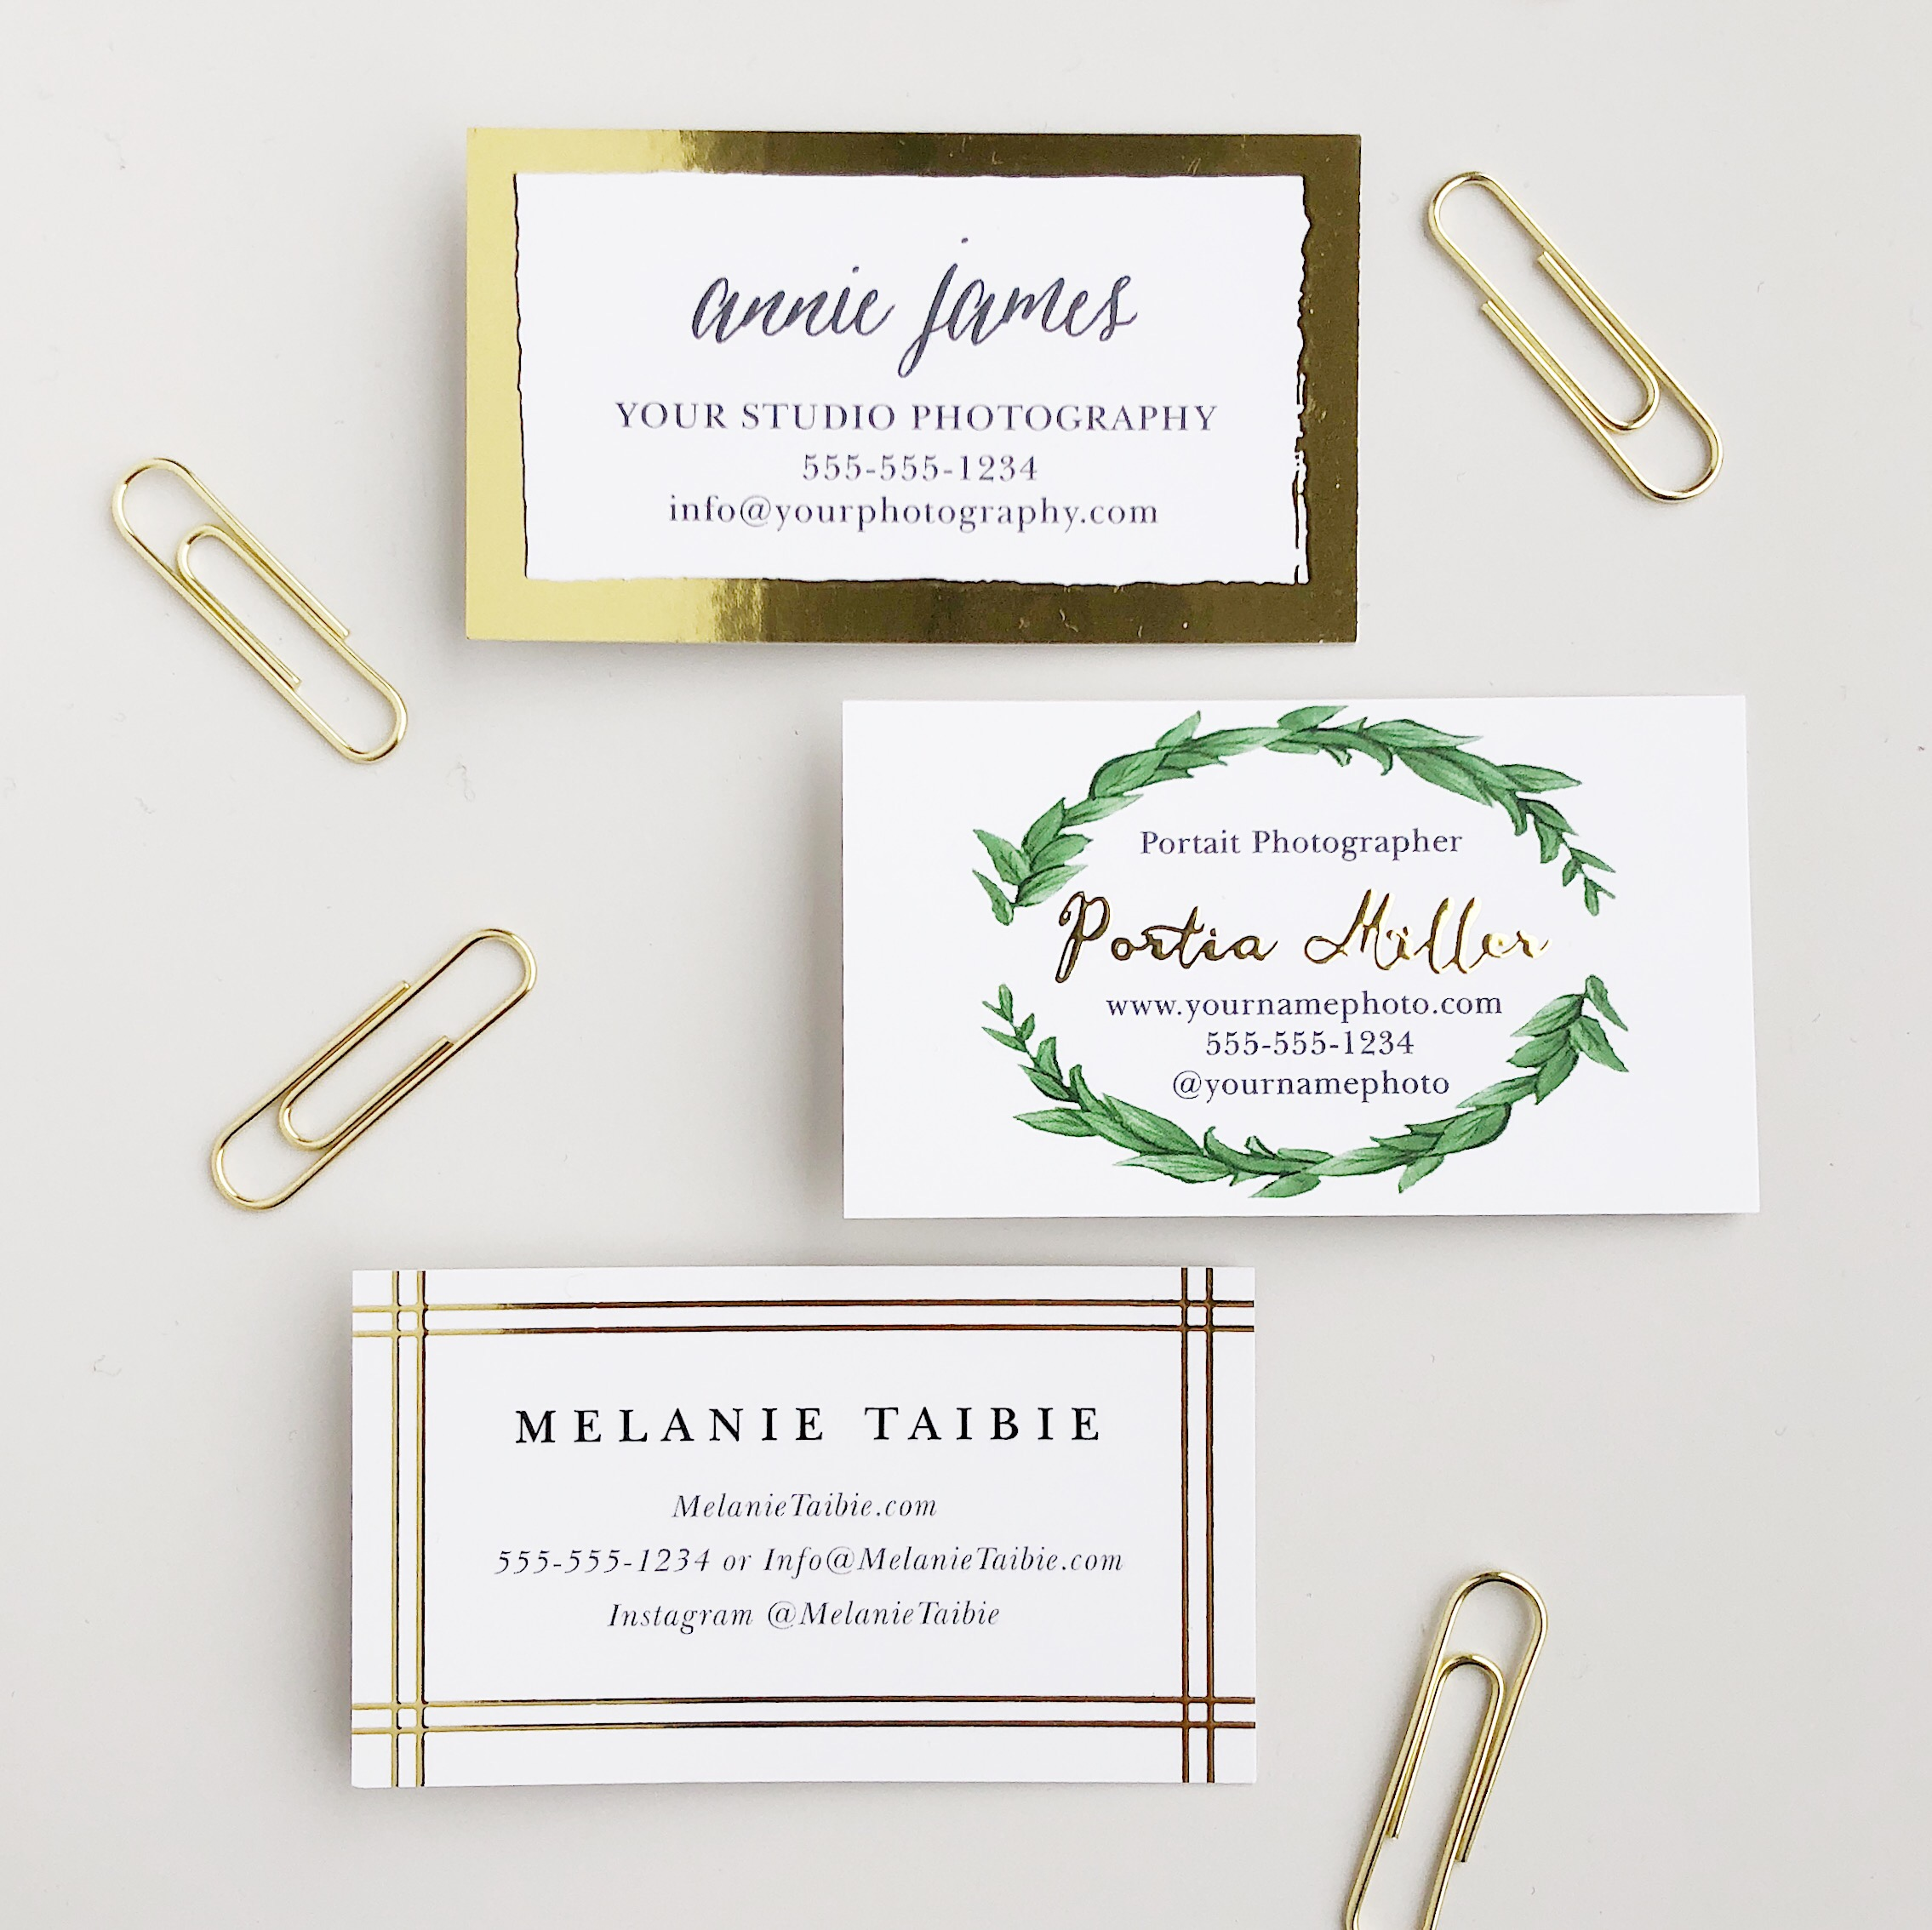 Basic_Invite_Business_Cards_14.jpg